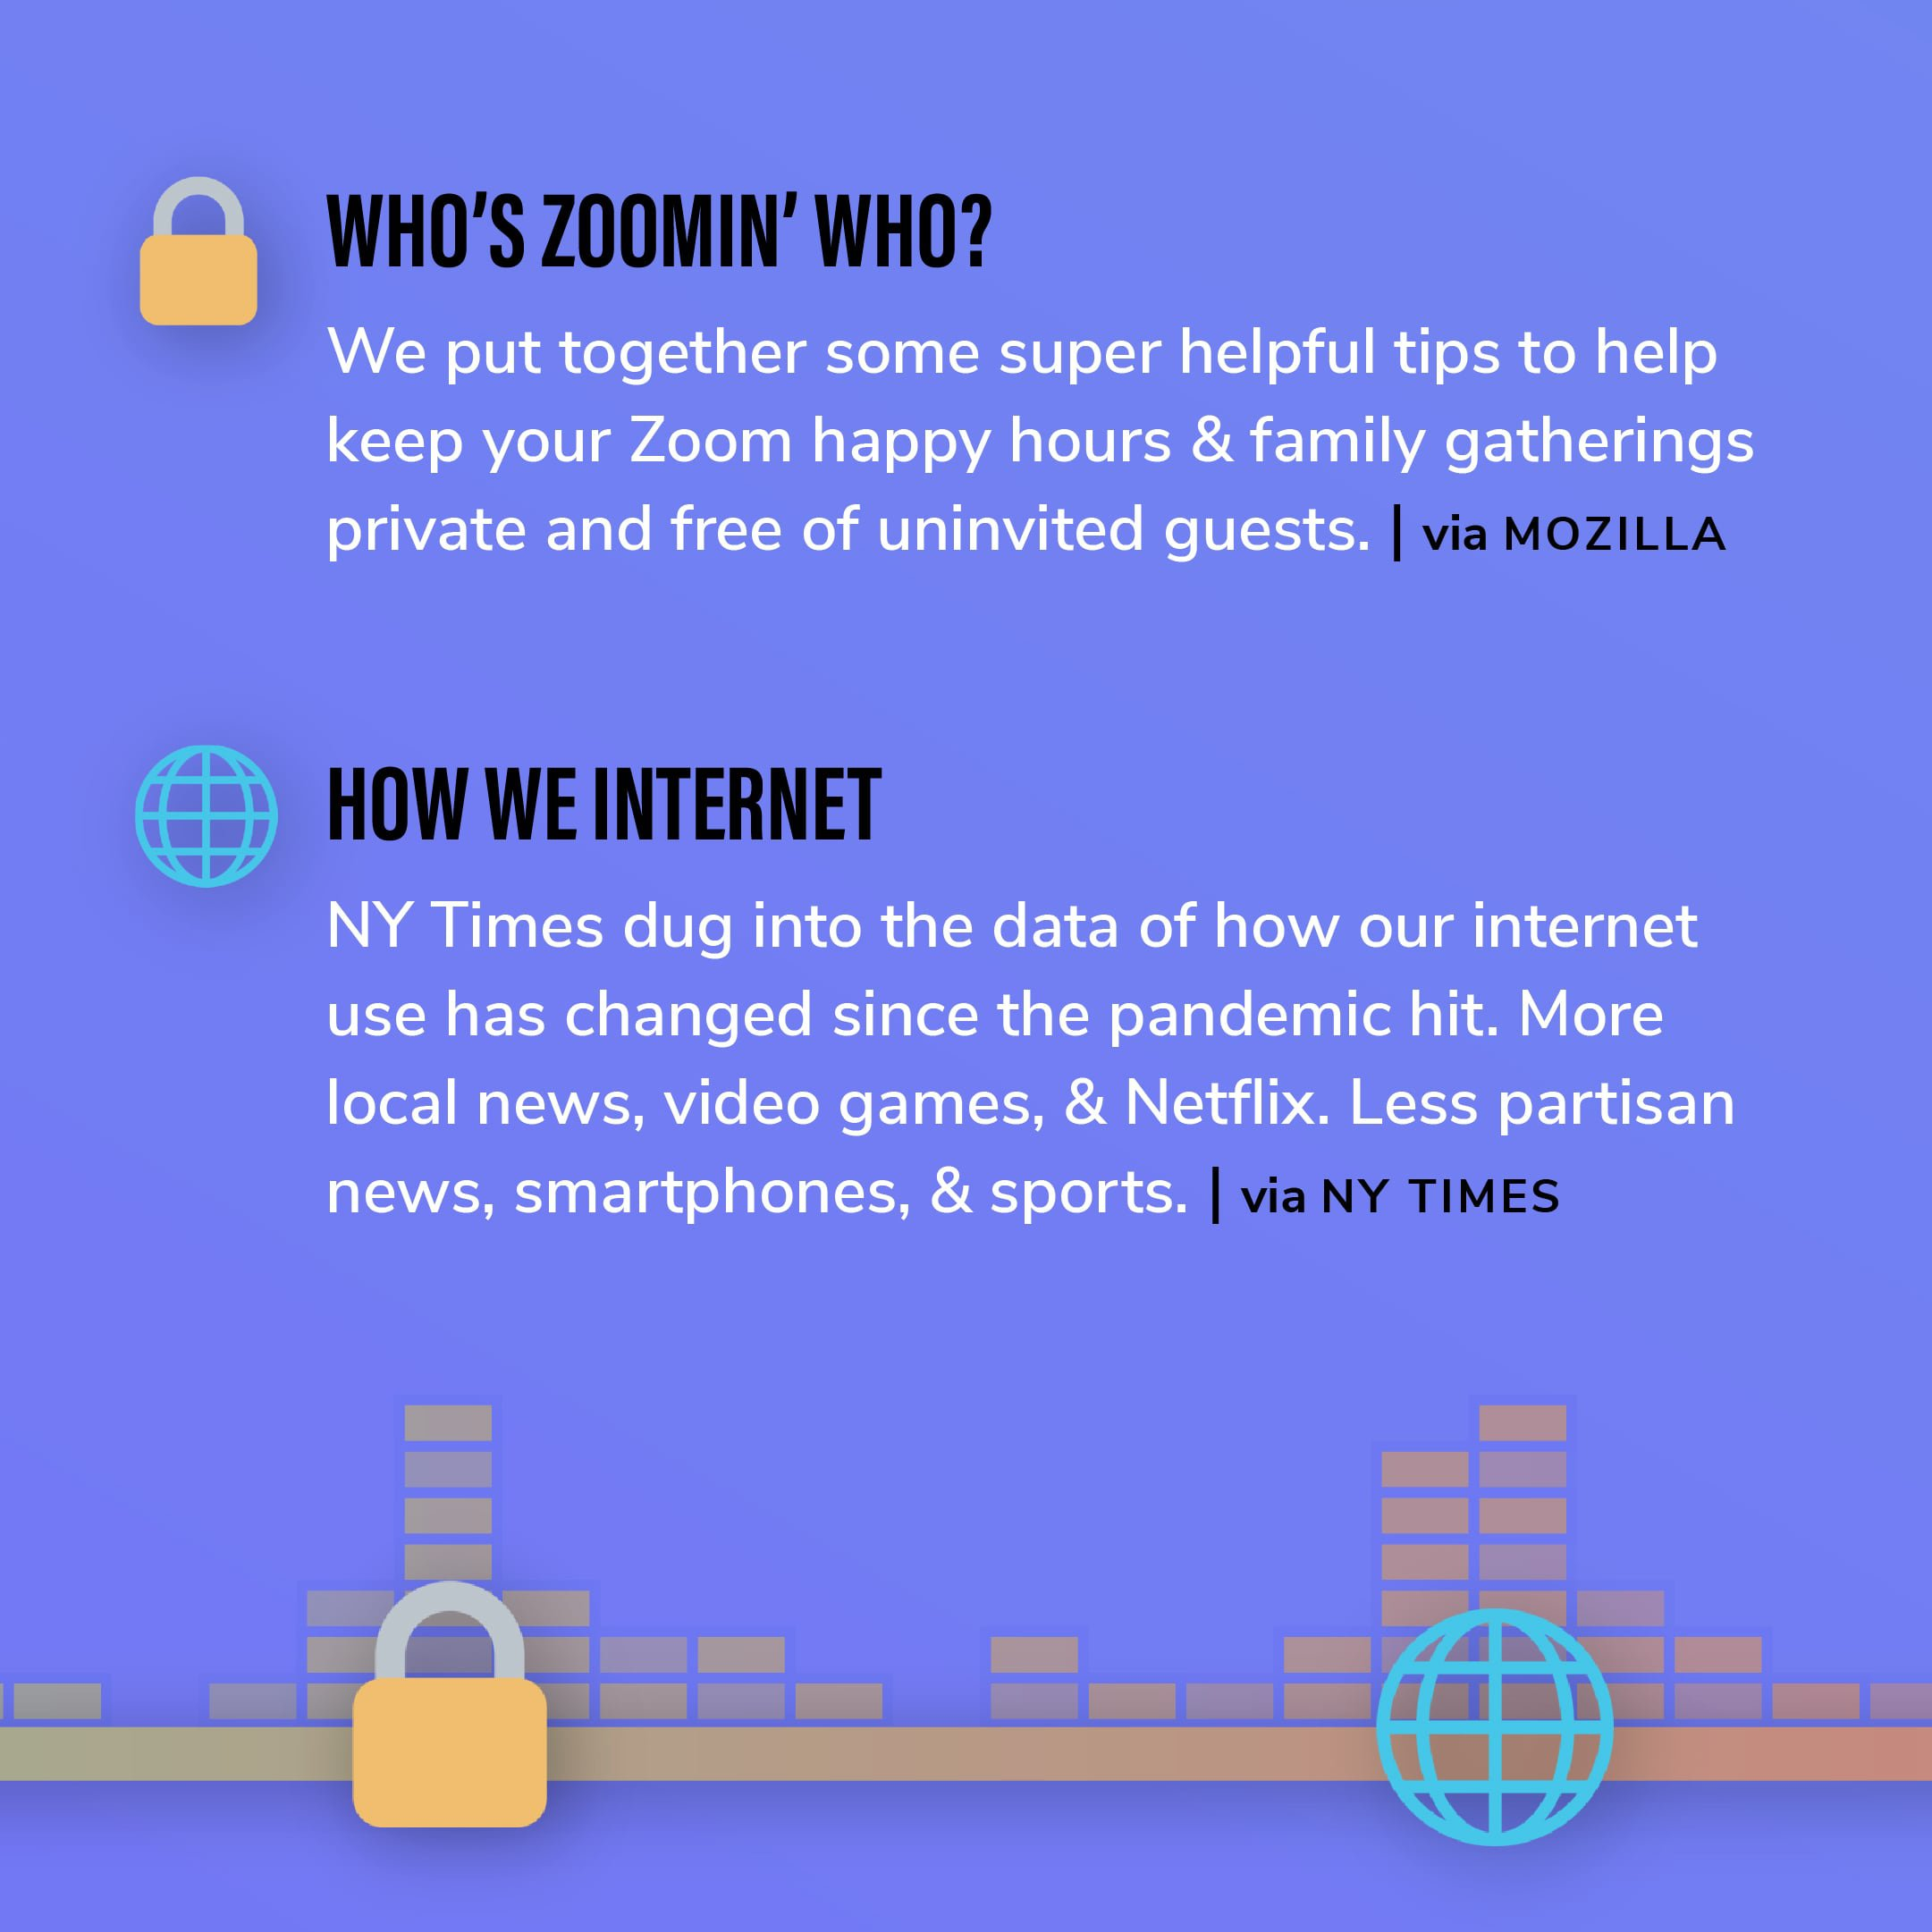 Story 7: We put together some super helpful tips to help keep your Zoom happy hours & family gatherings private and free of uninvited guests. Story 8: NY Times dug into the data of how our internet use has changed since the pandemic hit. More local news, video games, & Netflix. Less partisan news, smartphones, & sports.